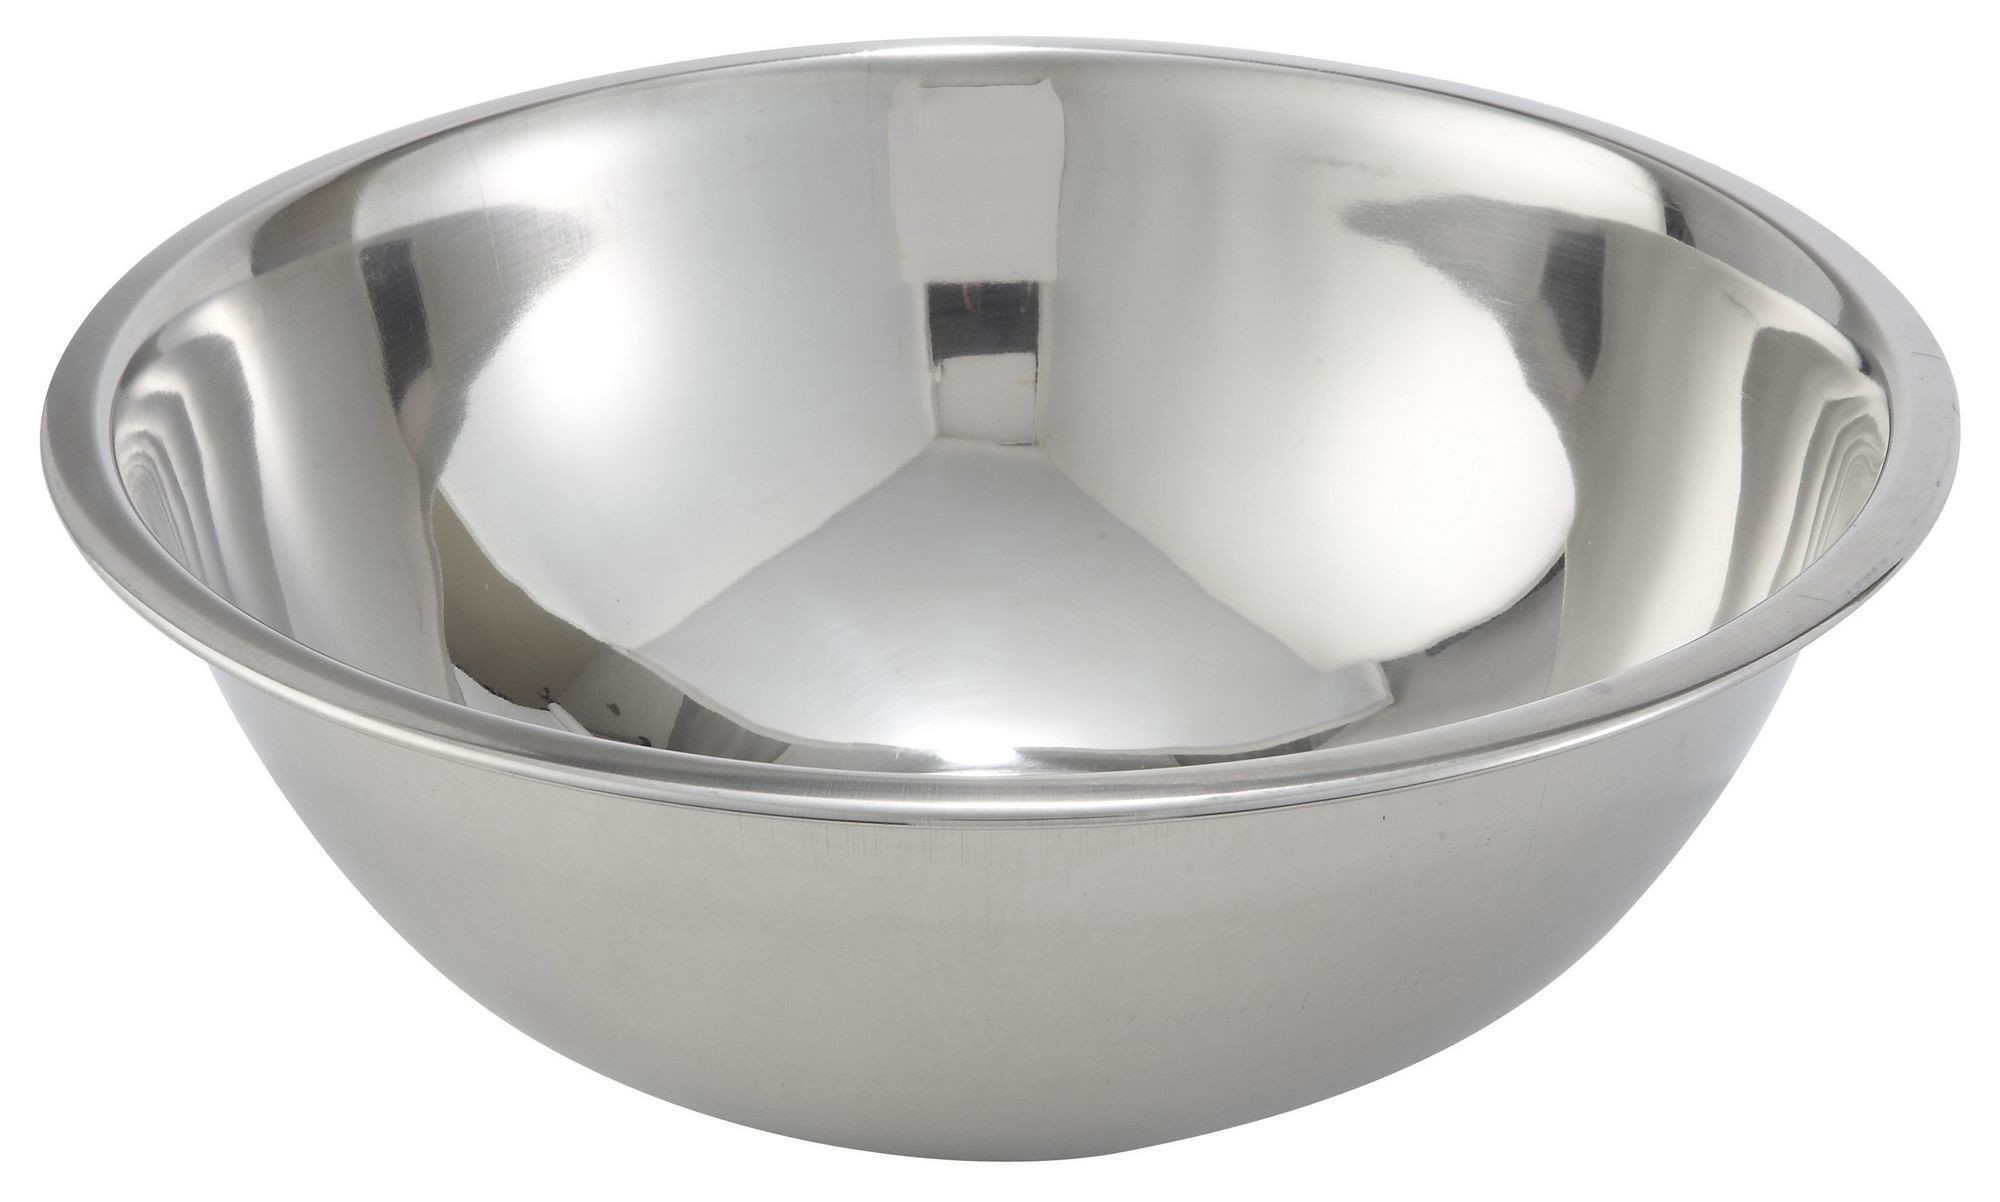 Winco MXBT-800Q Stainless Steel All-Purpose Mixing Bowl 8 Qt.